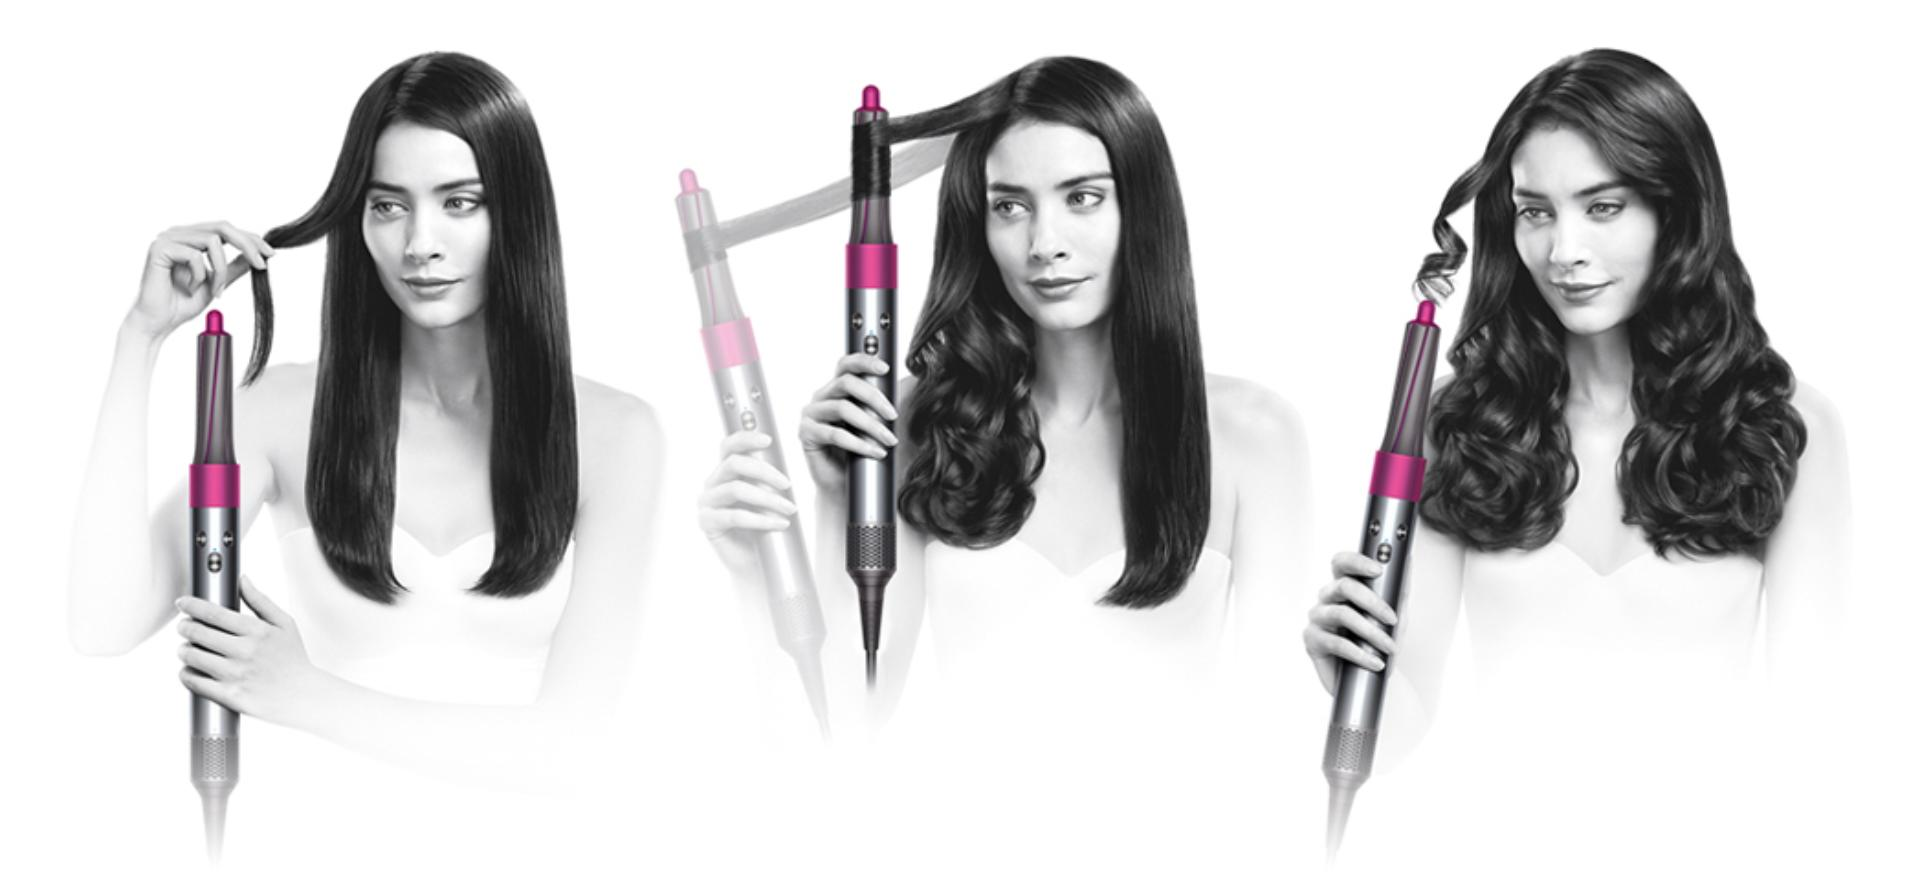 Video showing how to curl hair with the Dyson Airwrap™ styler